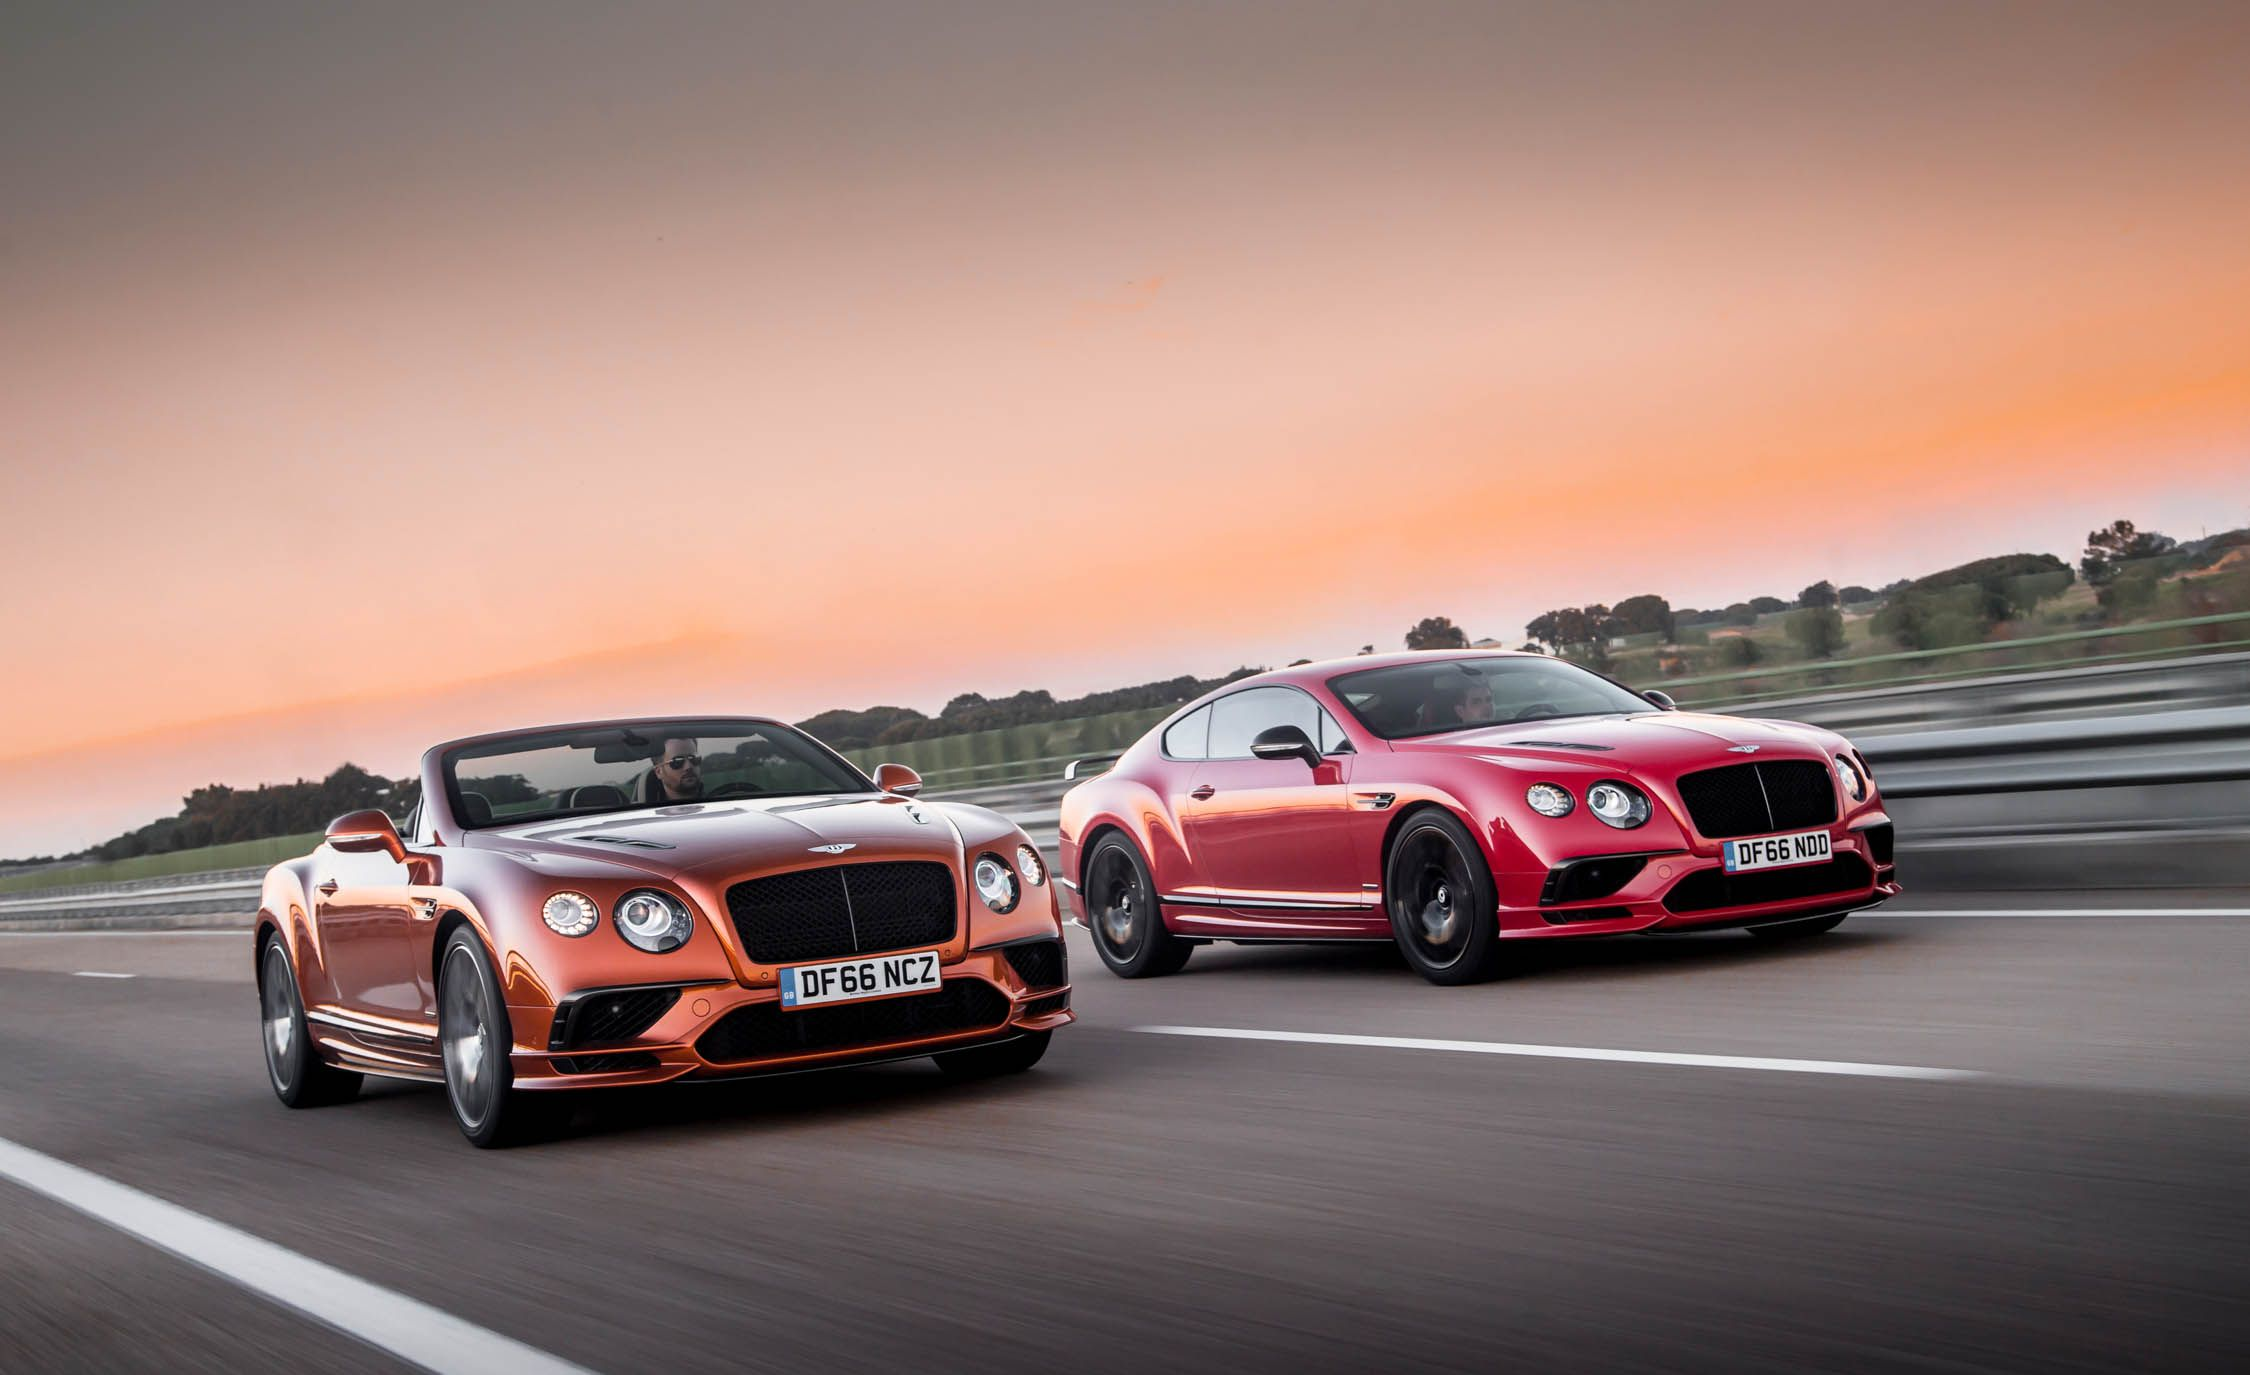 2018 Bentley Continental GT Supersports Coupe and Bentley Continental GT Convertible Wallpapers (9)